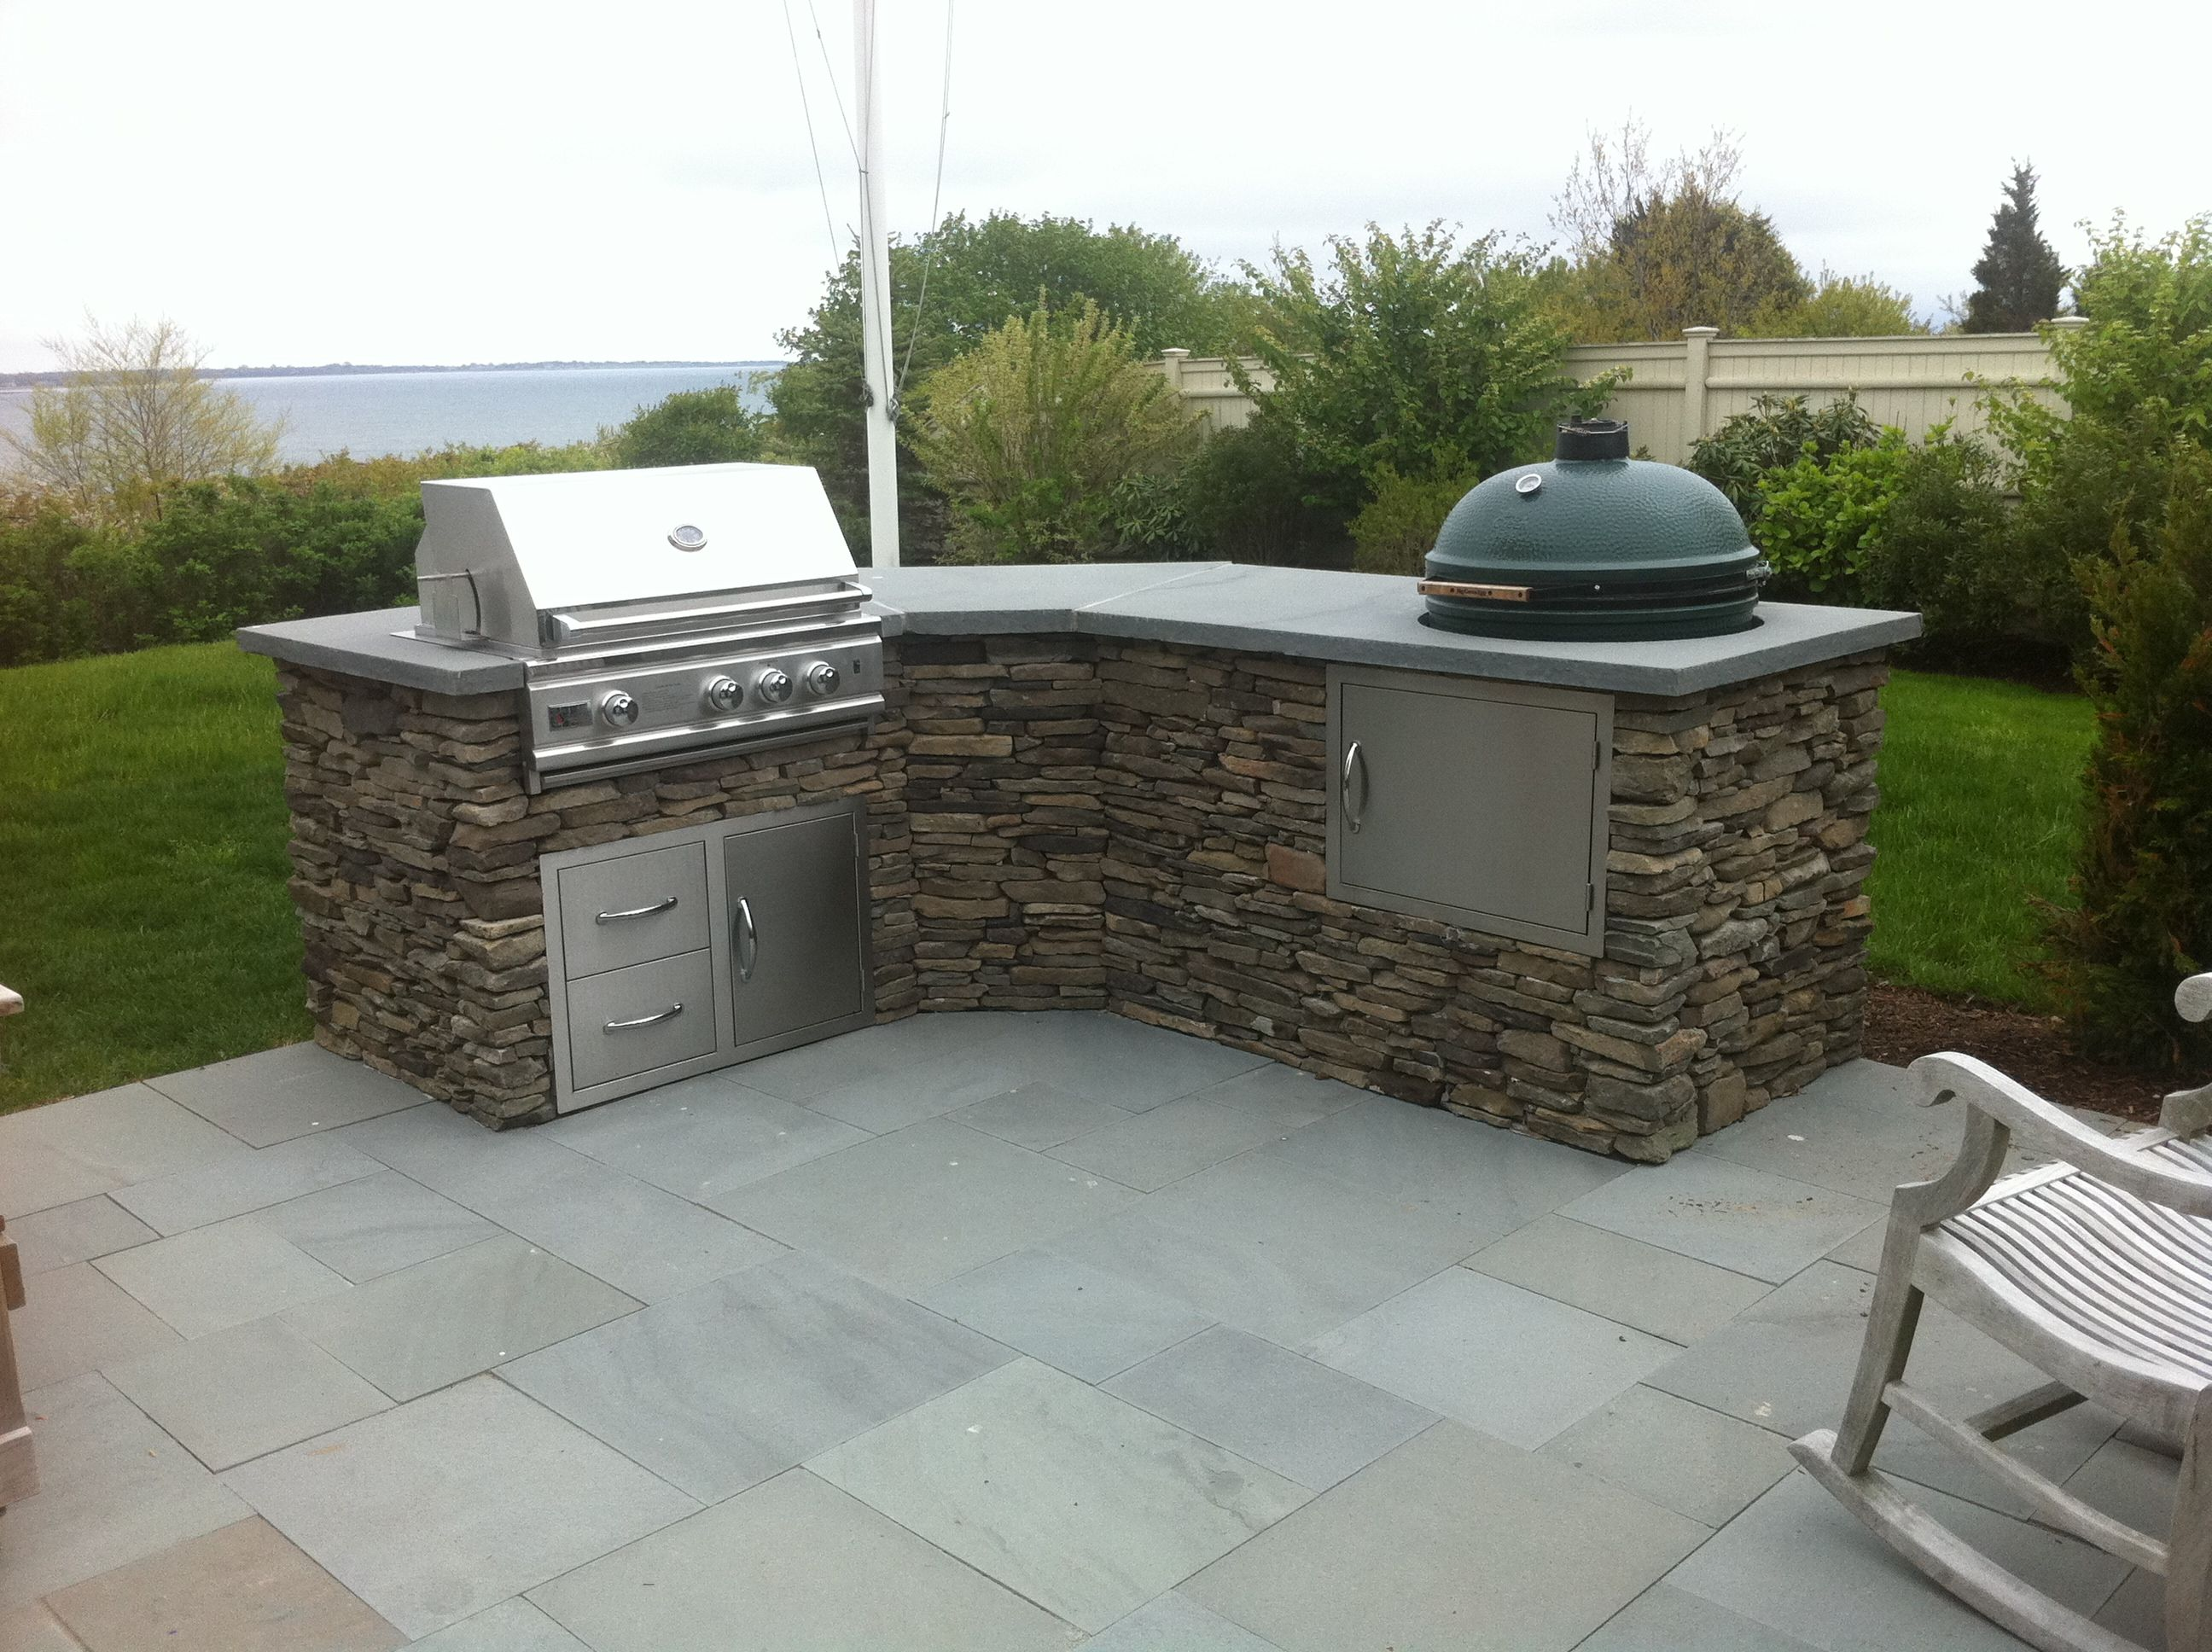 354 best Outdoor Kitchen images on Pinterest | Decks, Outdoor rooms ...